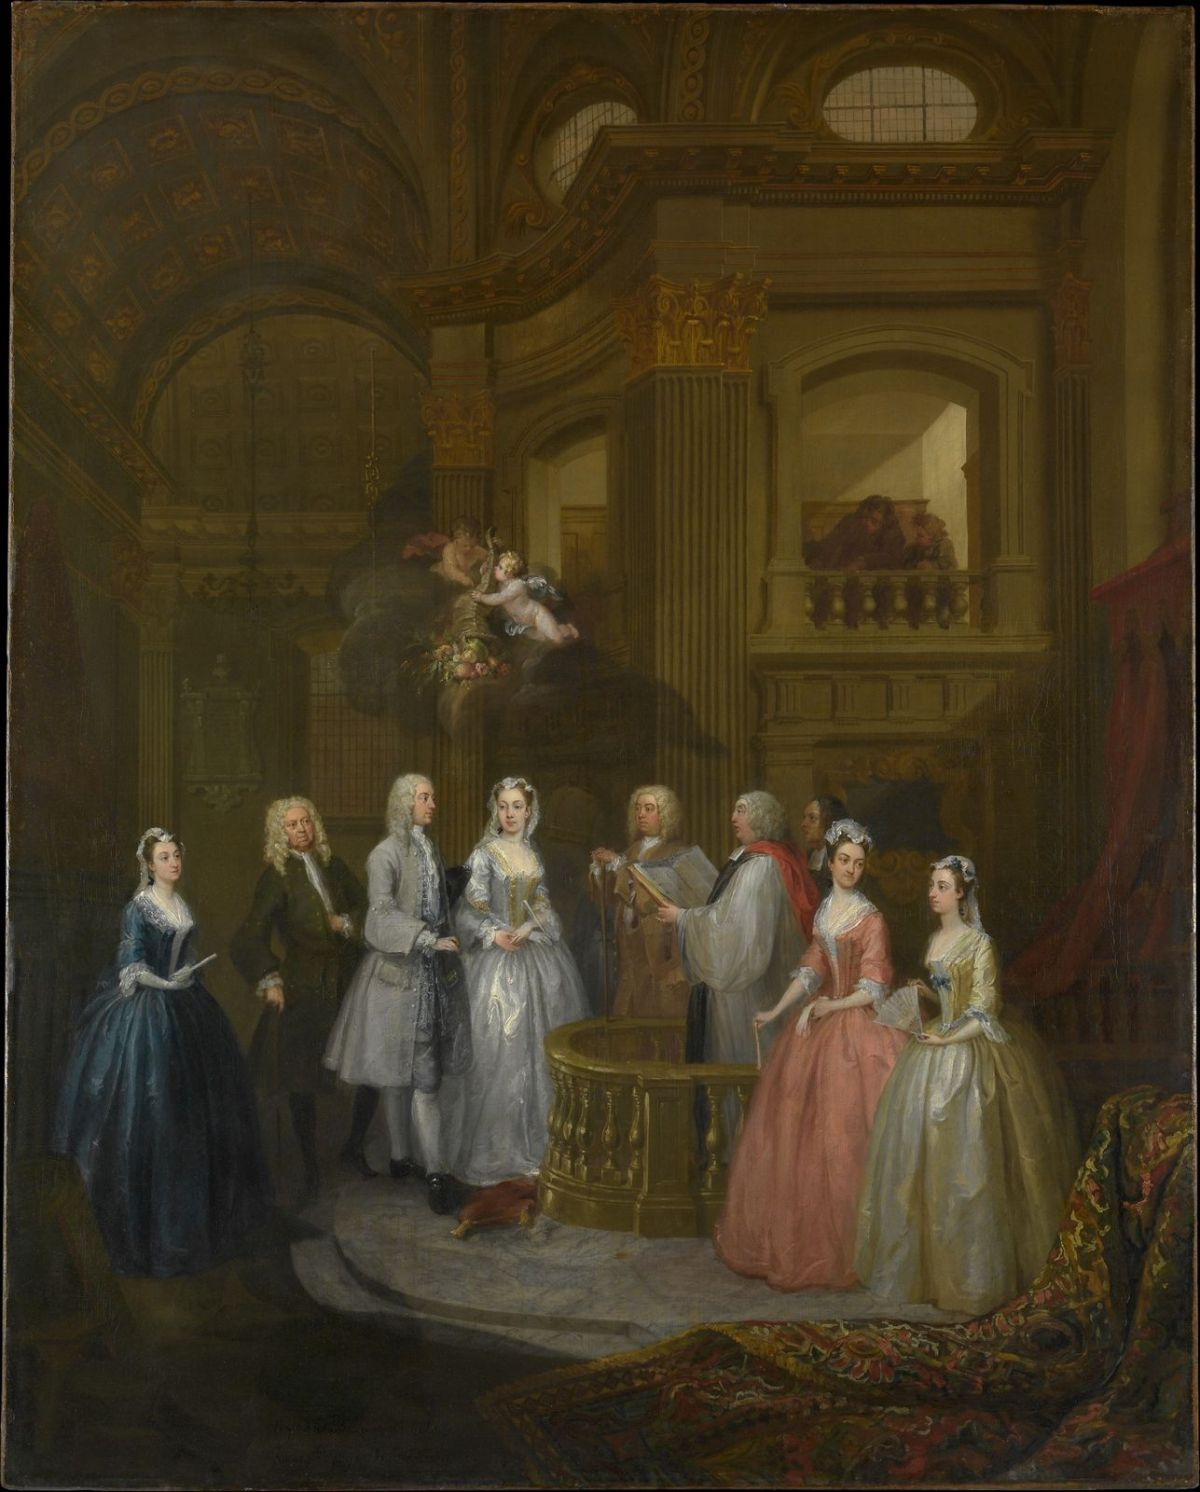 The Wedding of Stephen Beckingham and Mary Cox by William Hogarth